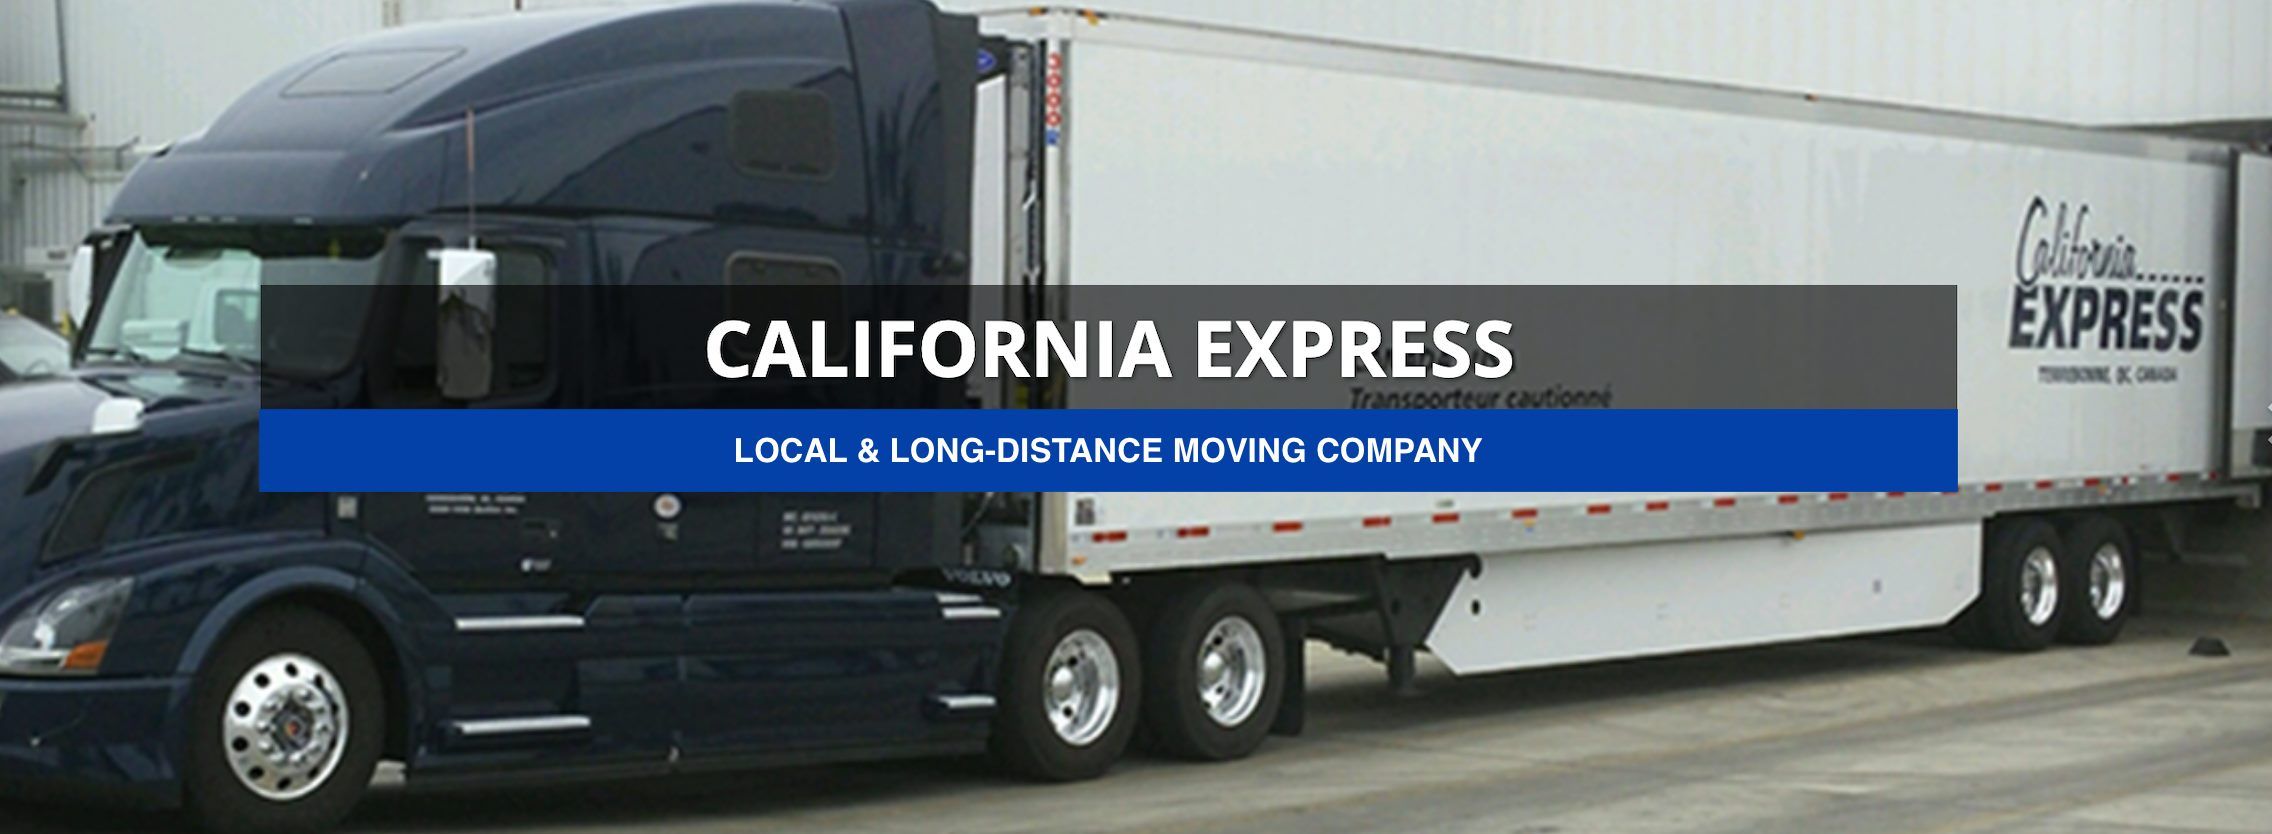 Looking for a California moving company to move places across the city?